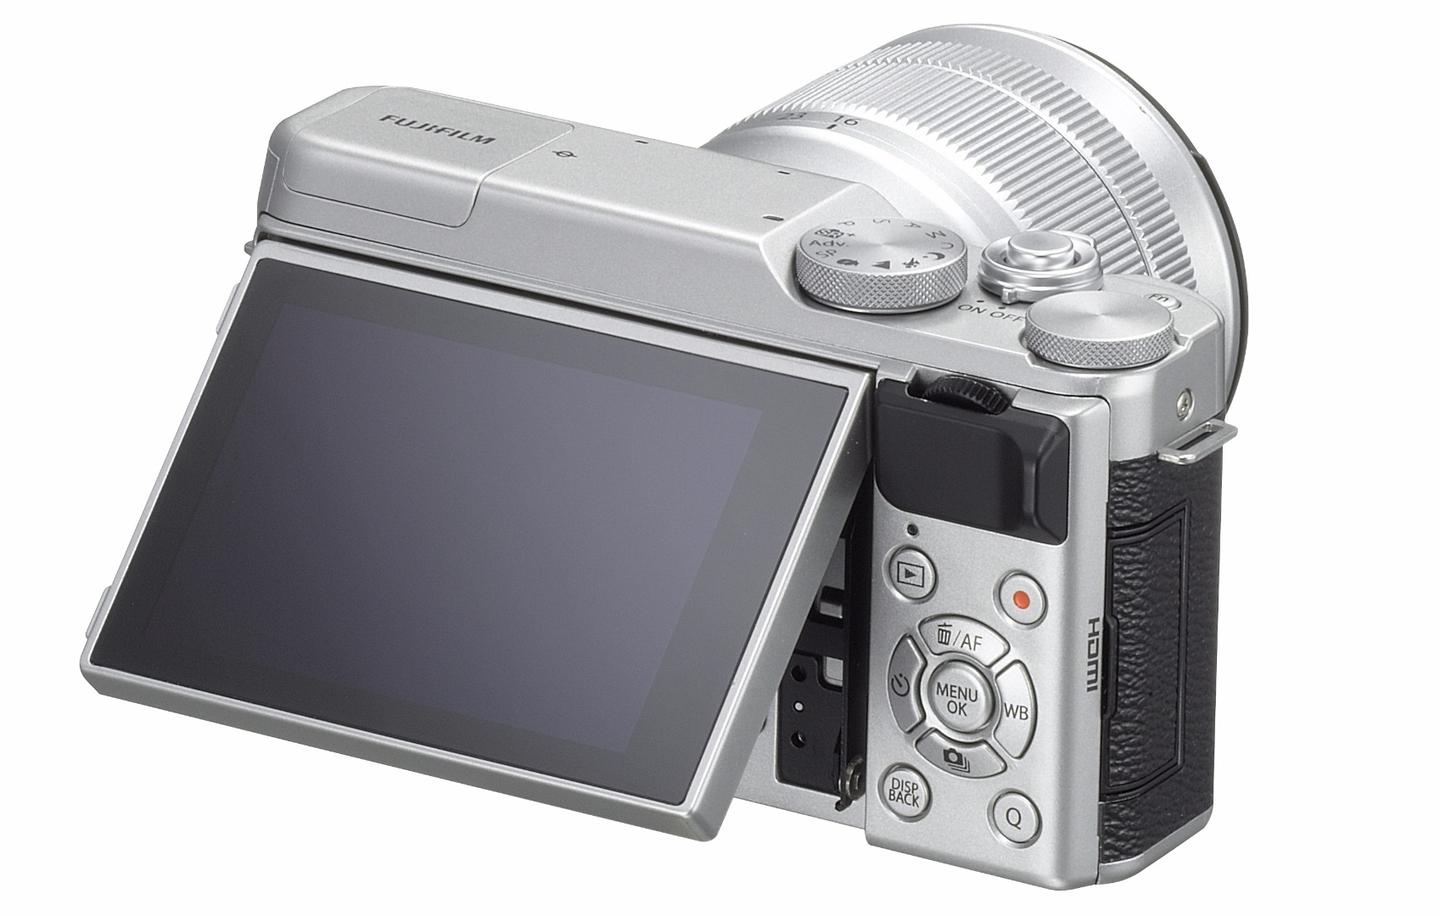 The rear monitor on the Fujifilm X-A10 can be angled for shooting in otherwise awkward positions